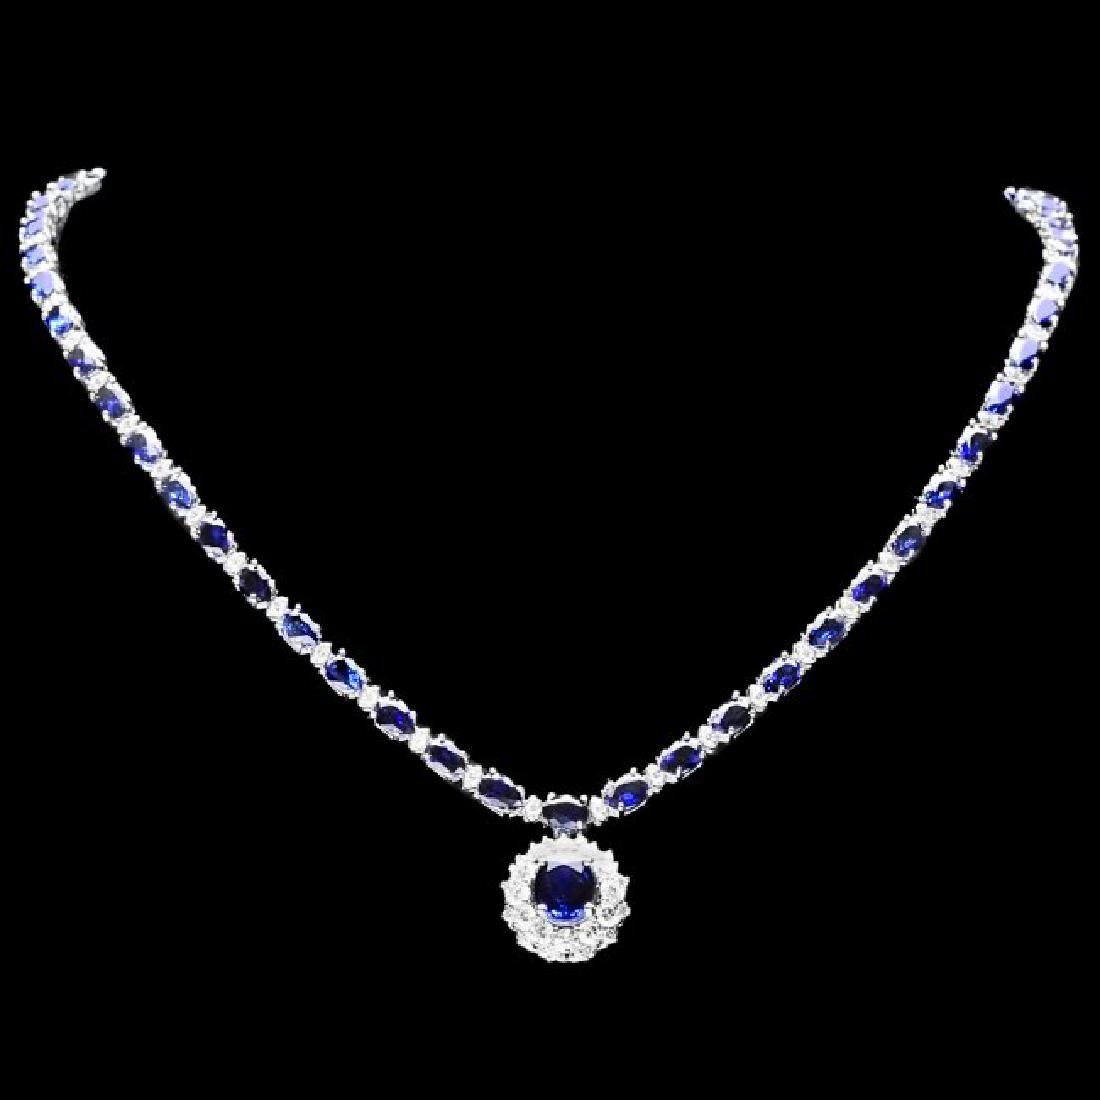 14k Gold 28ct Sapphire 3.35ct Diamond Necklace